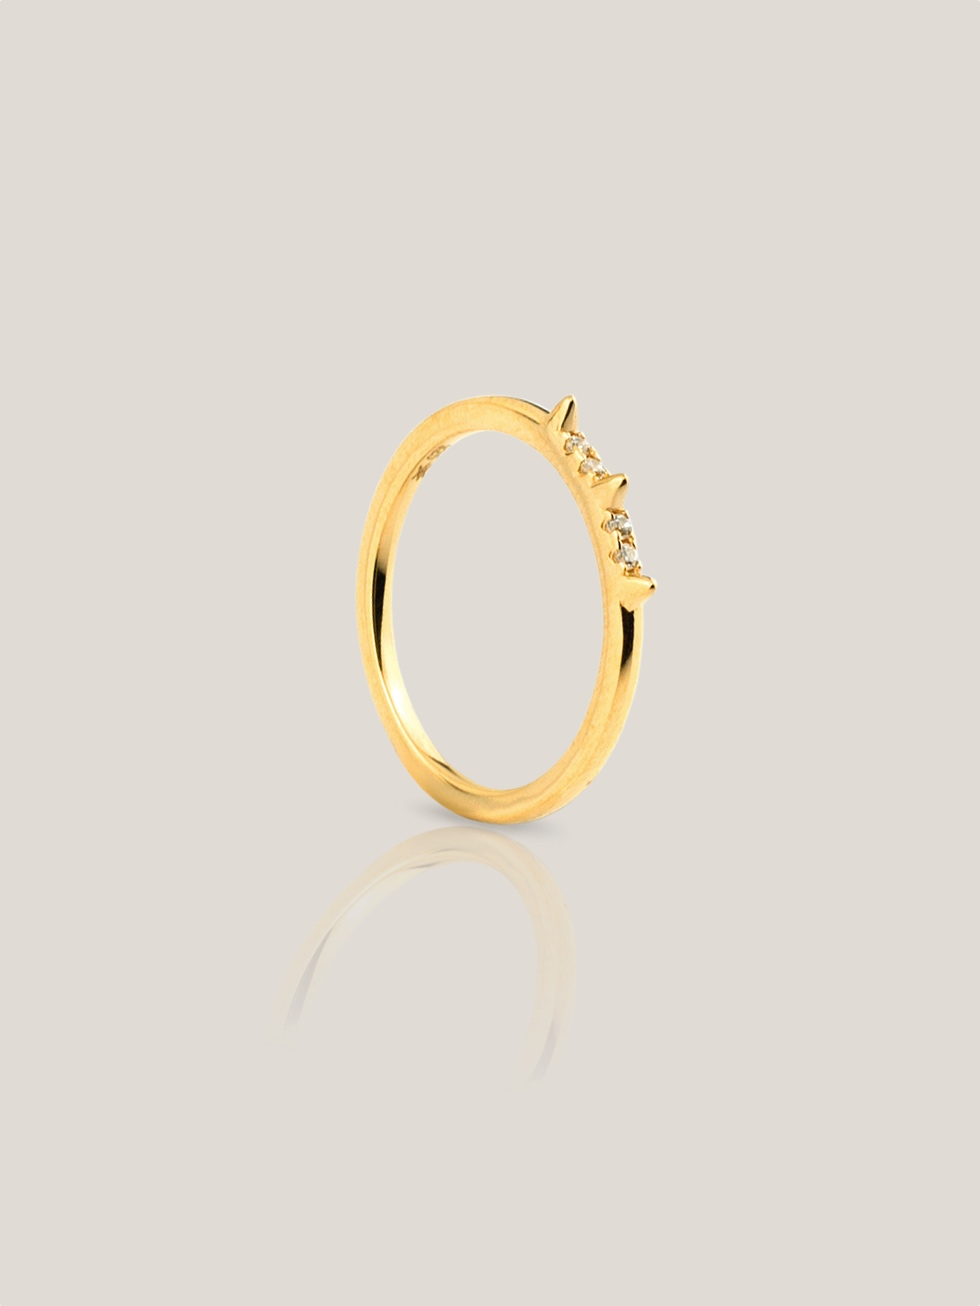 PUNK gold ring